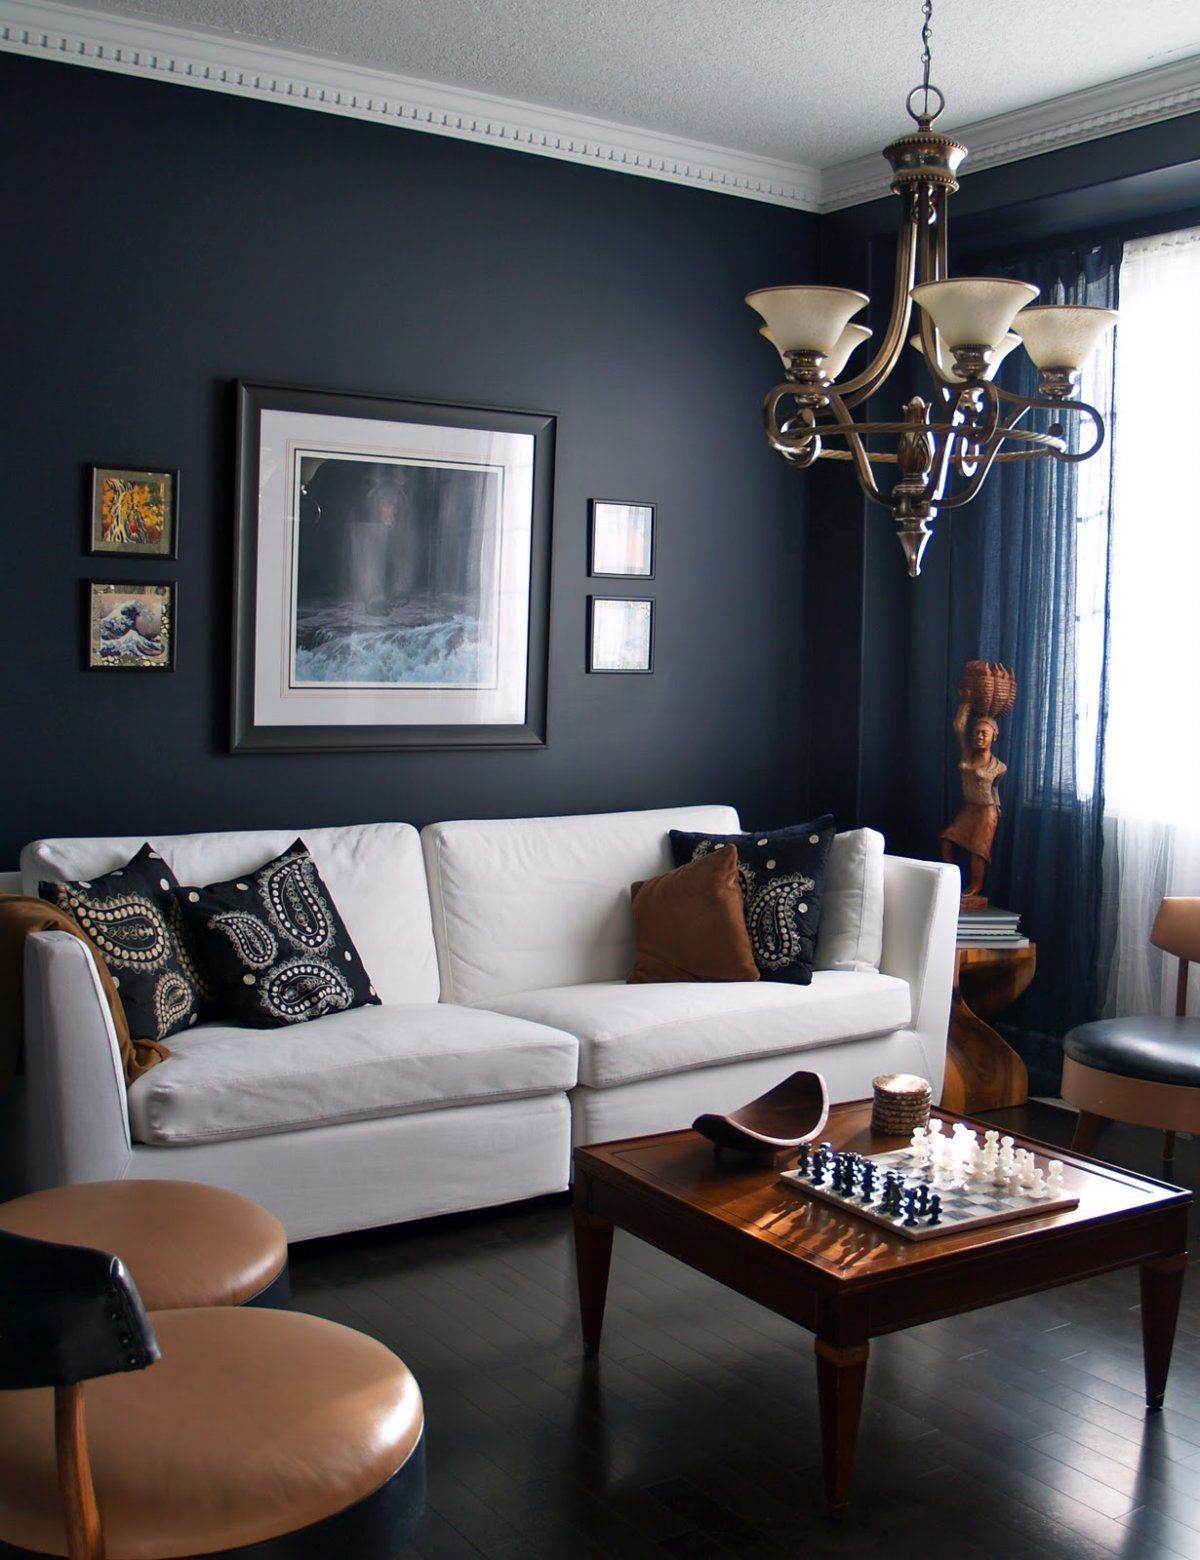 Brown and dark blue bedroom - Navy Blue Walls